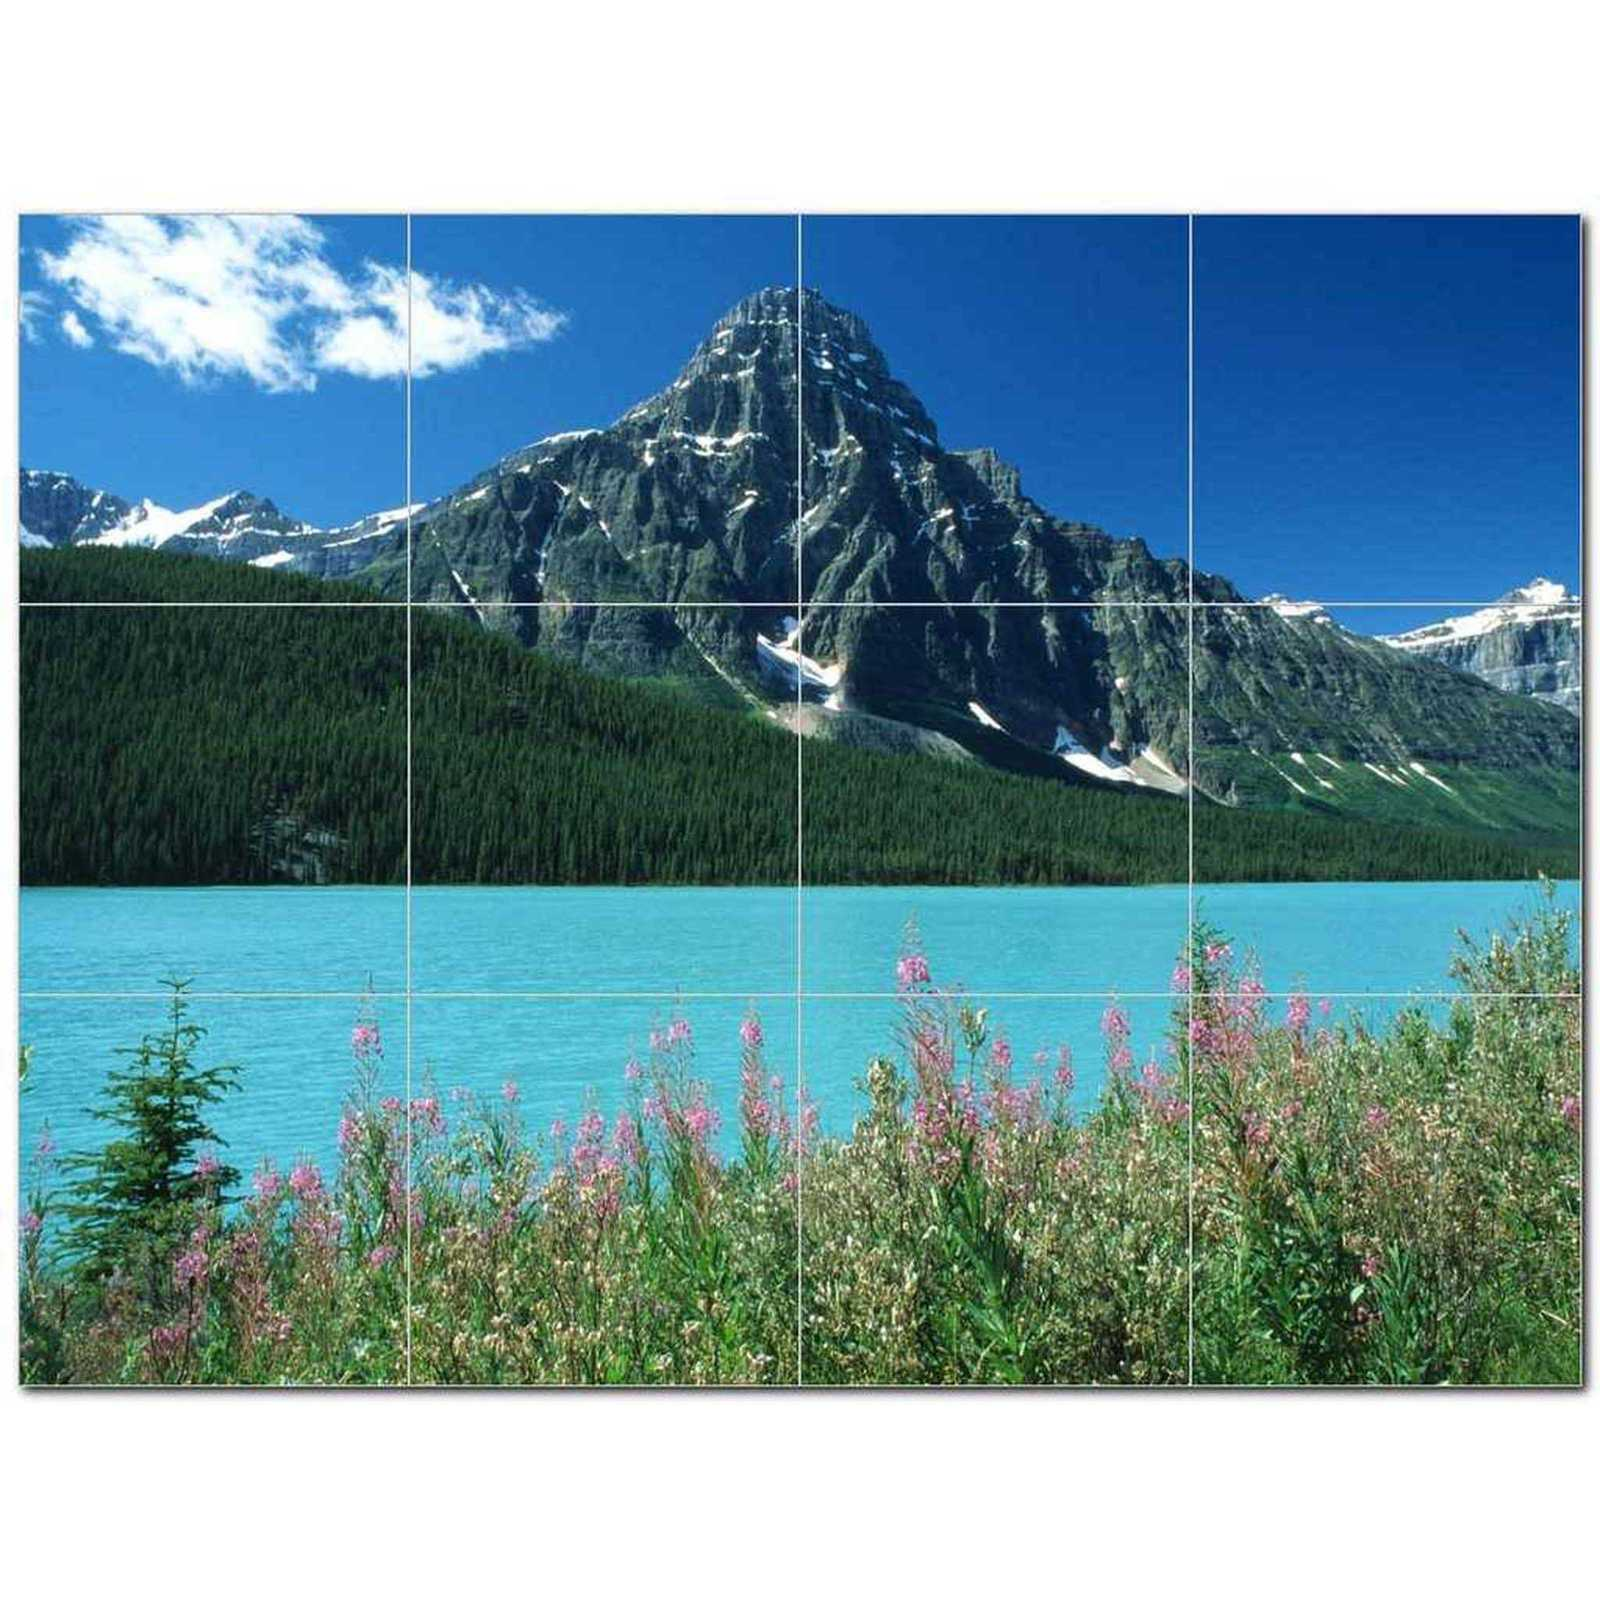 Primary image for Mountain Photo Ceramic Tile Mural Kitchen Backsplash Bathroom Shower BAZ405535